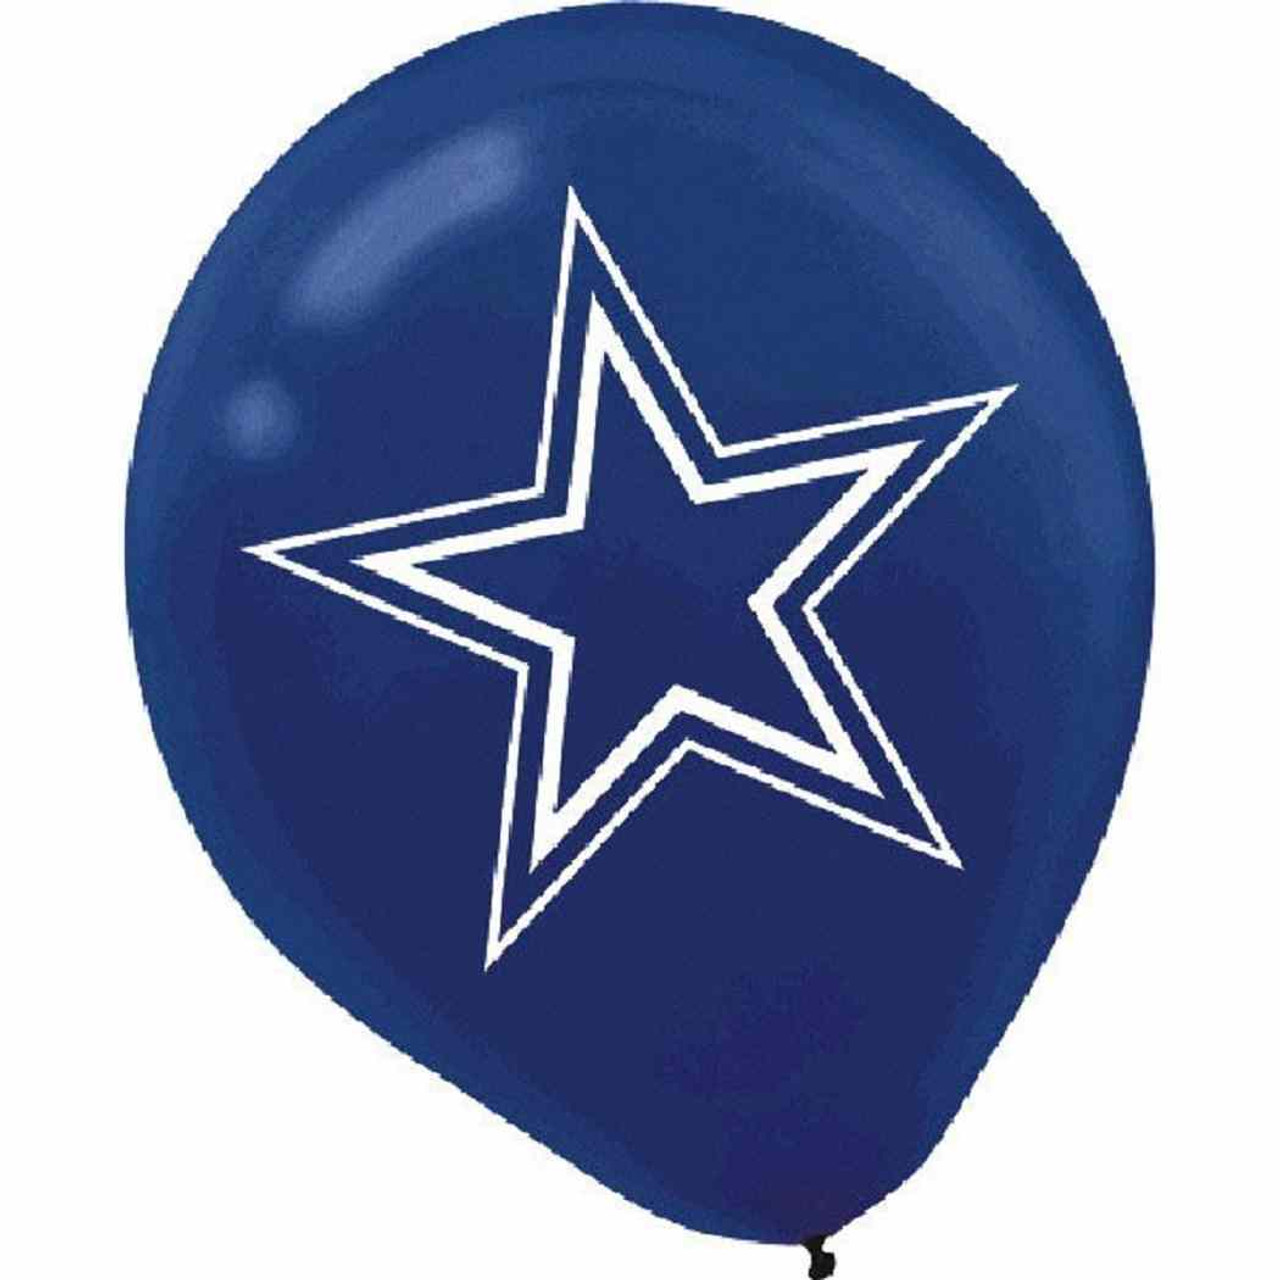 Incredible Dallas Cowboys Latex Balloons Nfl Football Sports Party Decoration Download Free Architecture Designs Scobabritishbridgeorg